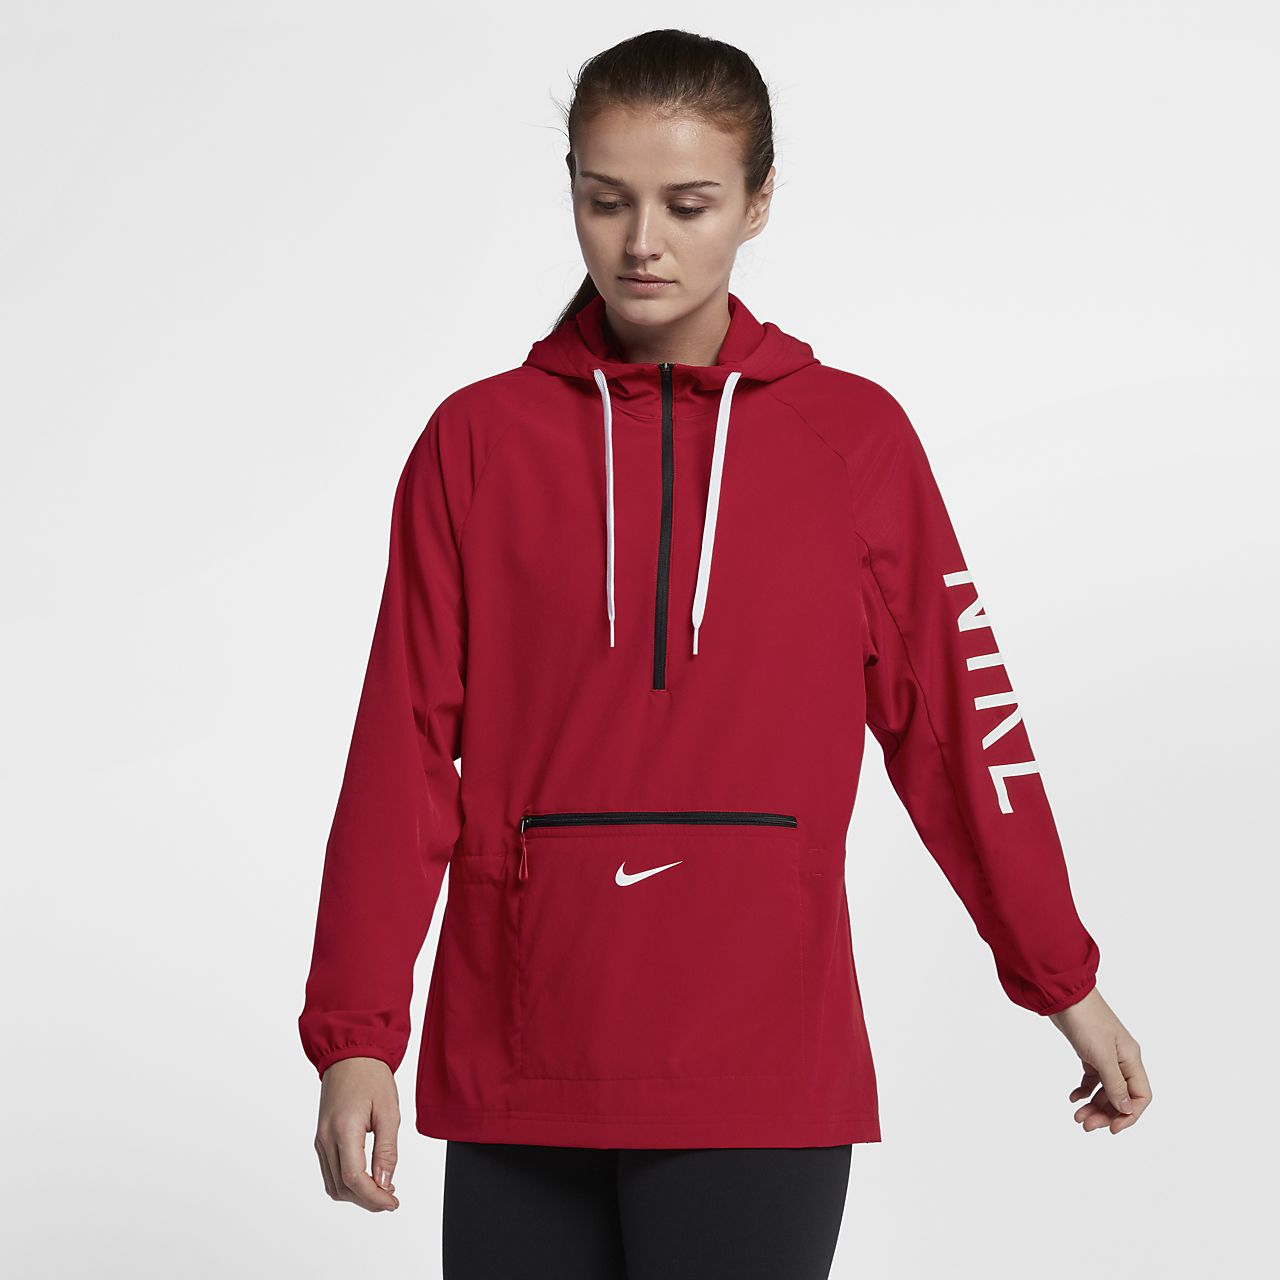 Nike Flex Women's Packable Training Jacket